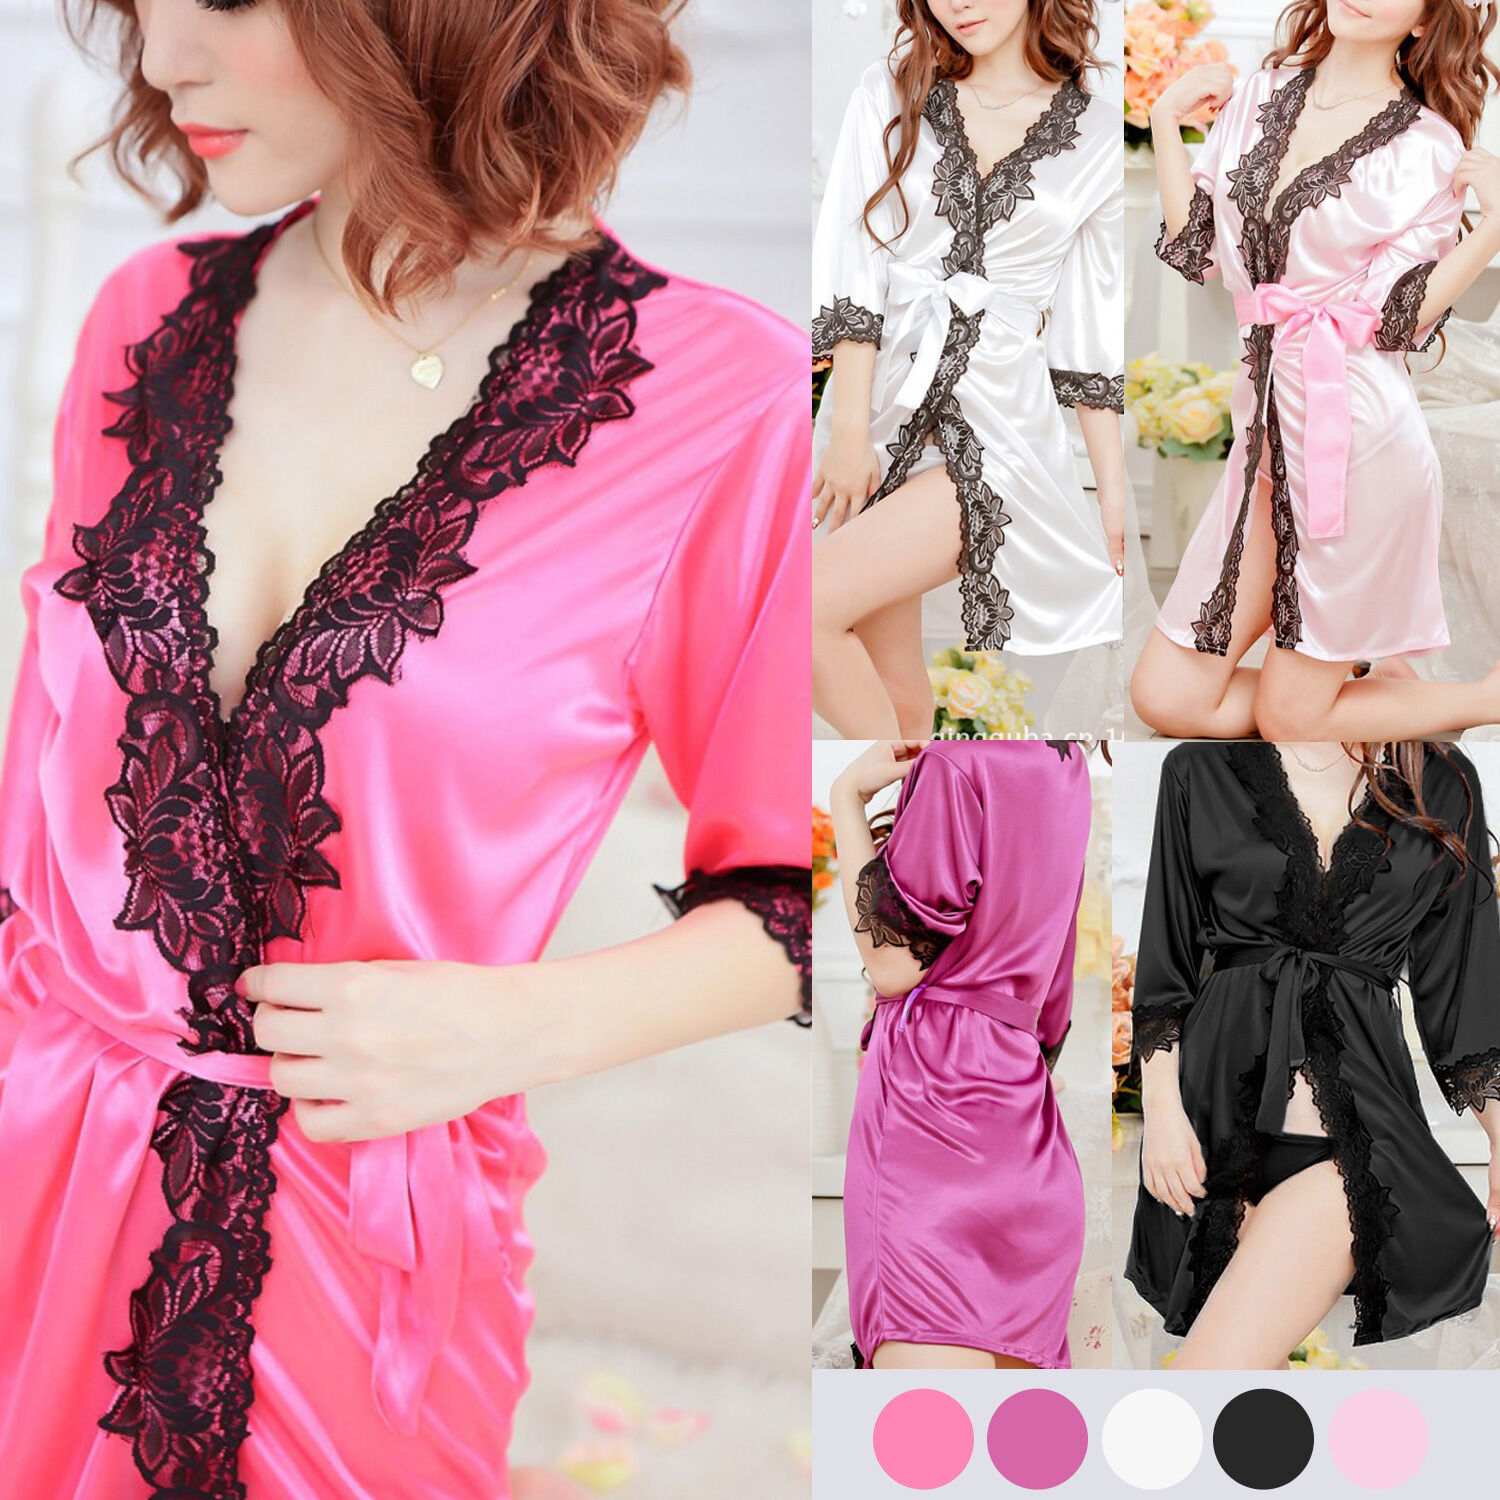 NEW COLLECTION SILK LACE Kimono Dressing Gown Bath Robe Lingerie +G ...